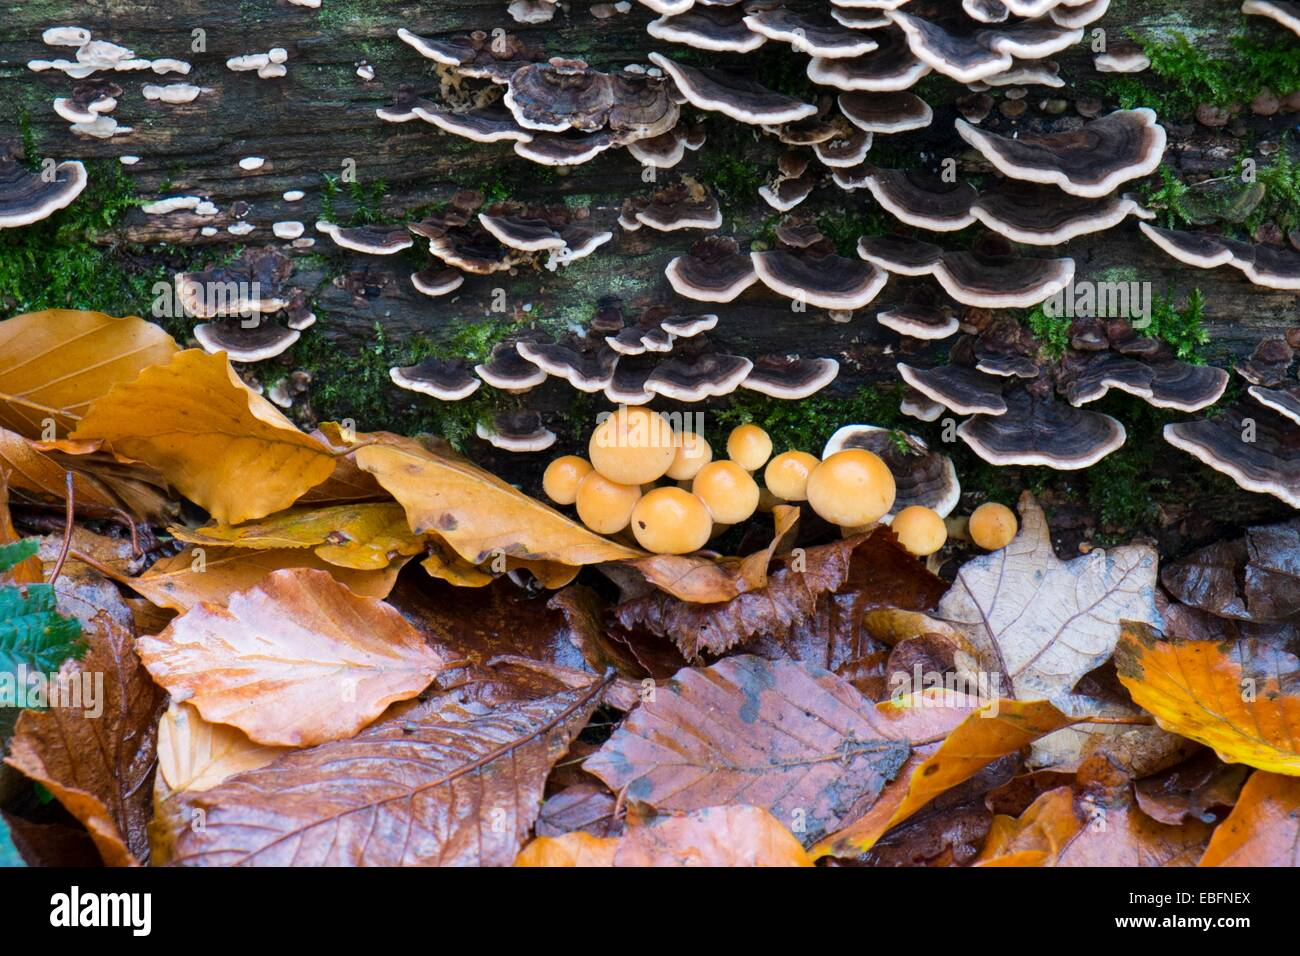 Turkeytail Bracket fungus and fallen leaves. - Stock Image